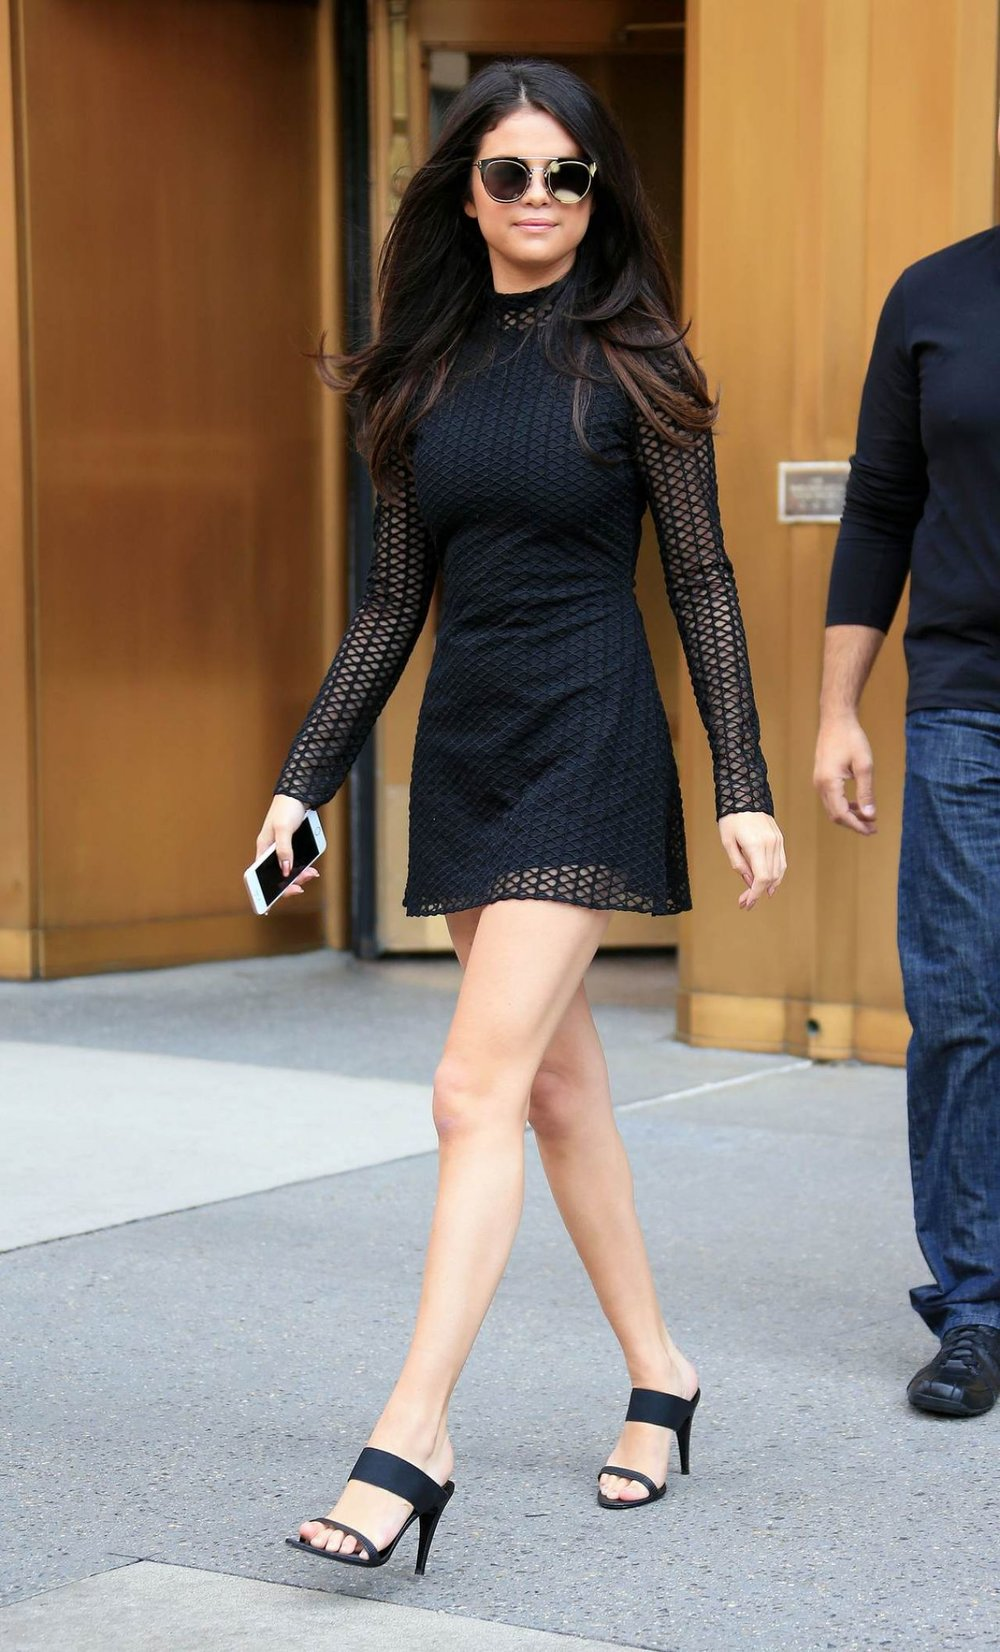 selena-gomez-hot-in-mini-dress-leaving-her-hotel-in-nyc-october-2015_1.jpg